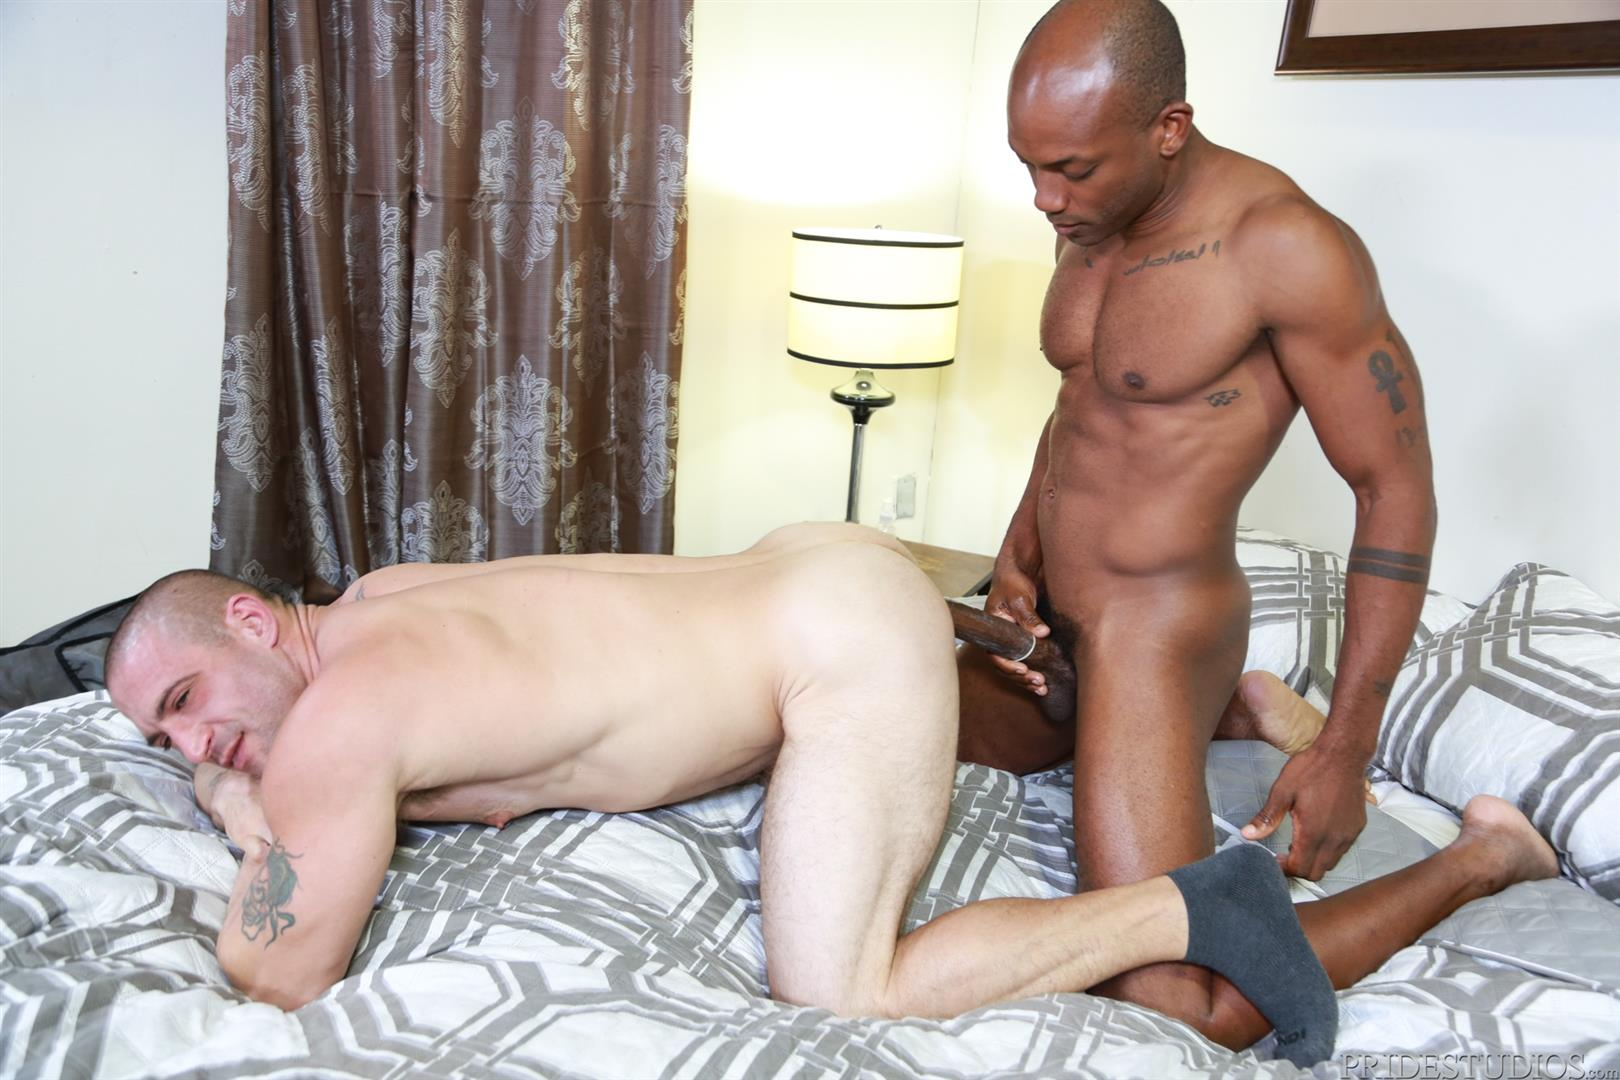 Extra-Big-Dicks-Osiris-Blade-and-Ceasar-Camaro-Big-Black-Cock-Interracial-Gay-Sex-12 White Muscle Hunk Begs For Big Black Cock